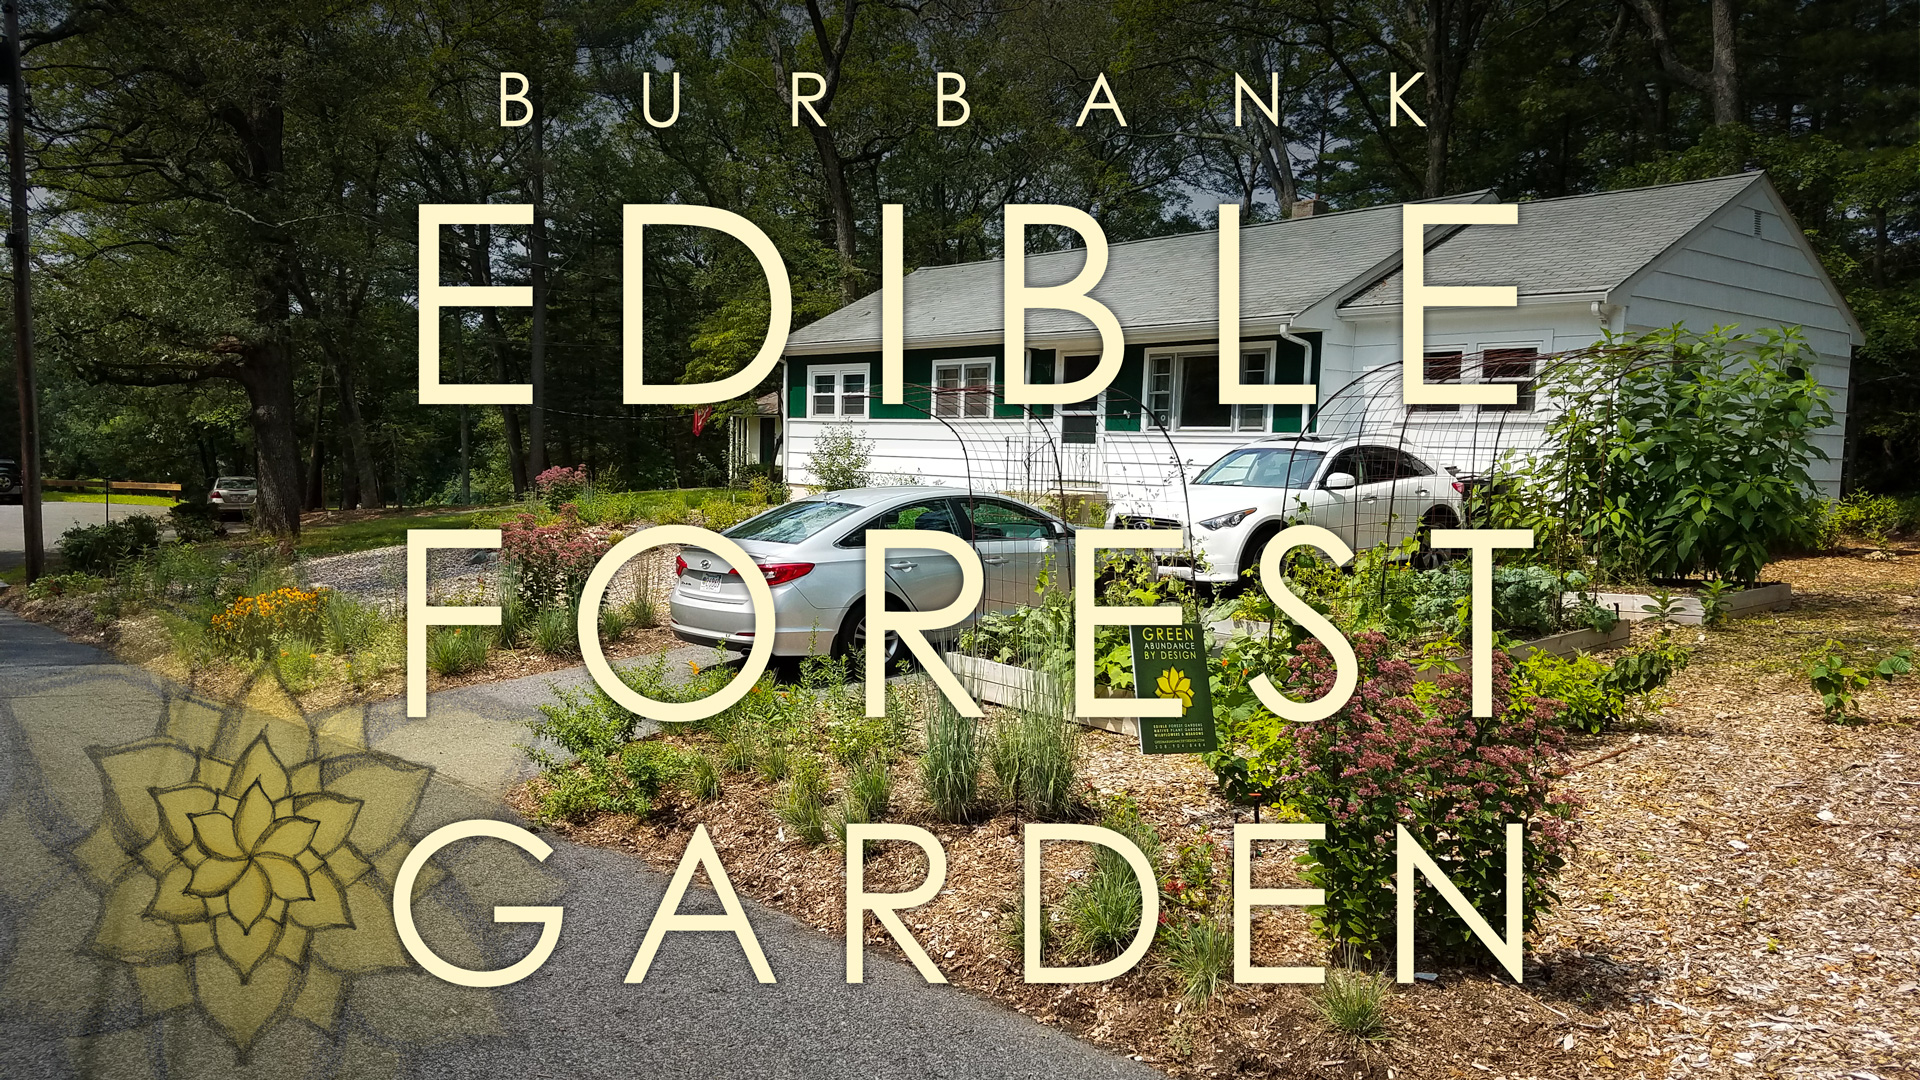 Burbank Edible Forest Garden